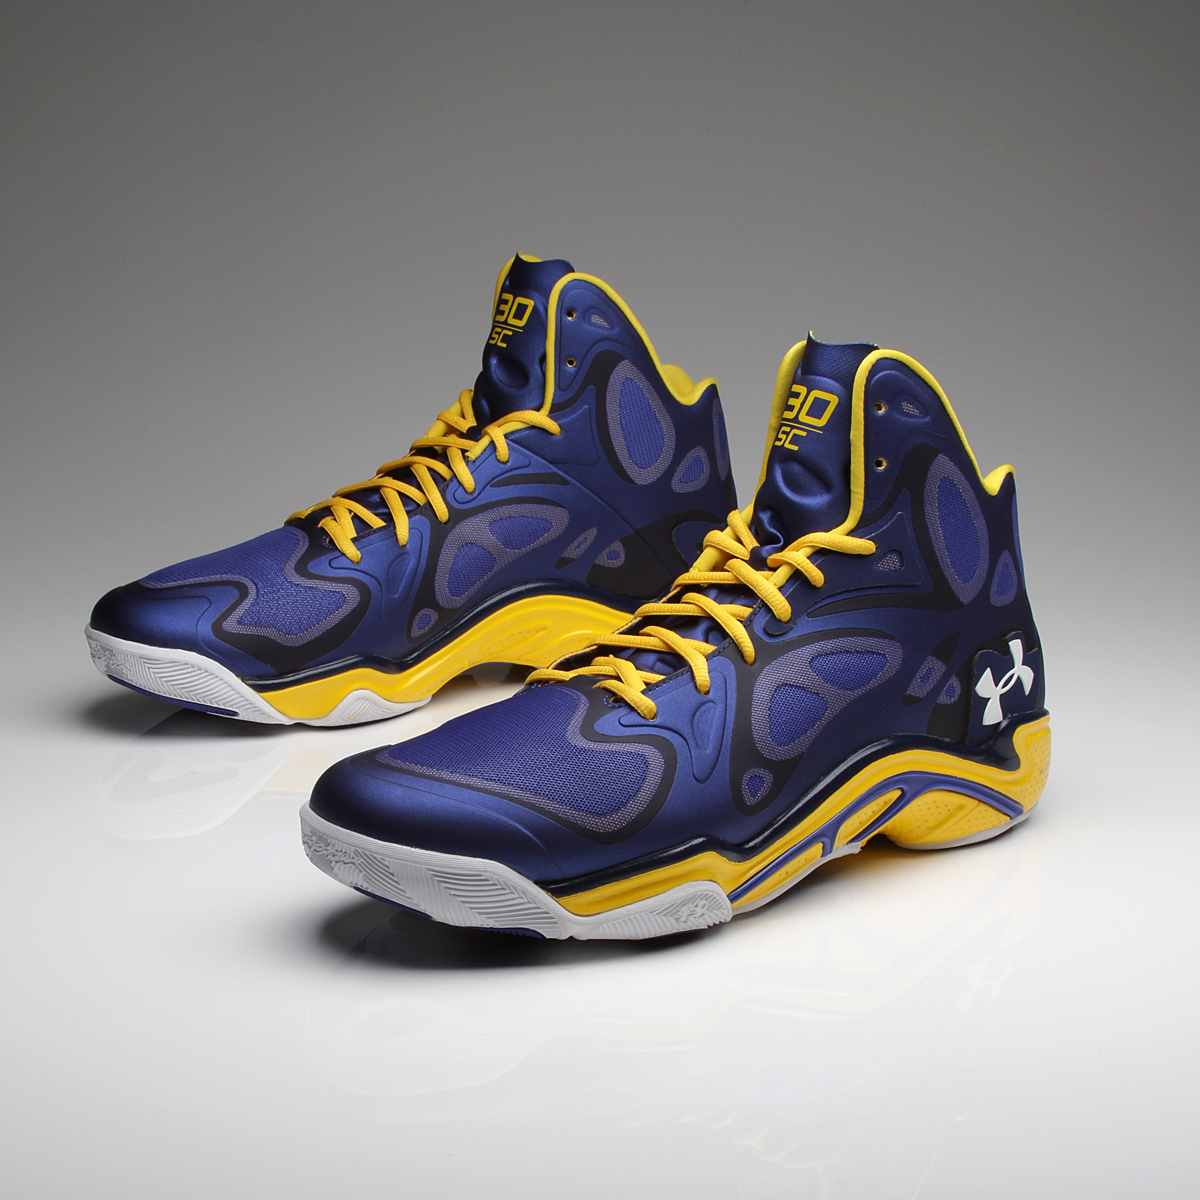 Under Armour Stephen Curry Anatomix